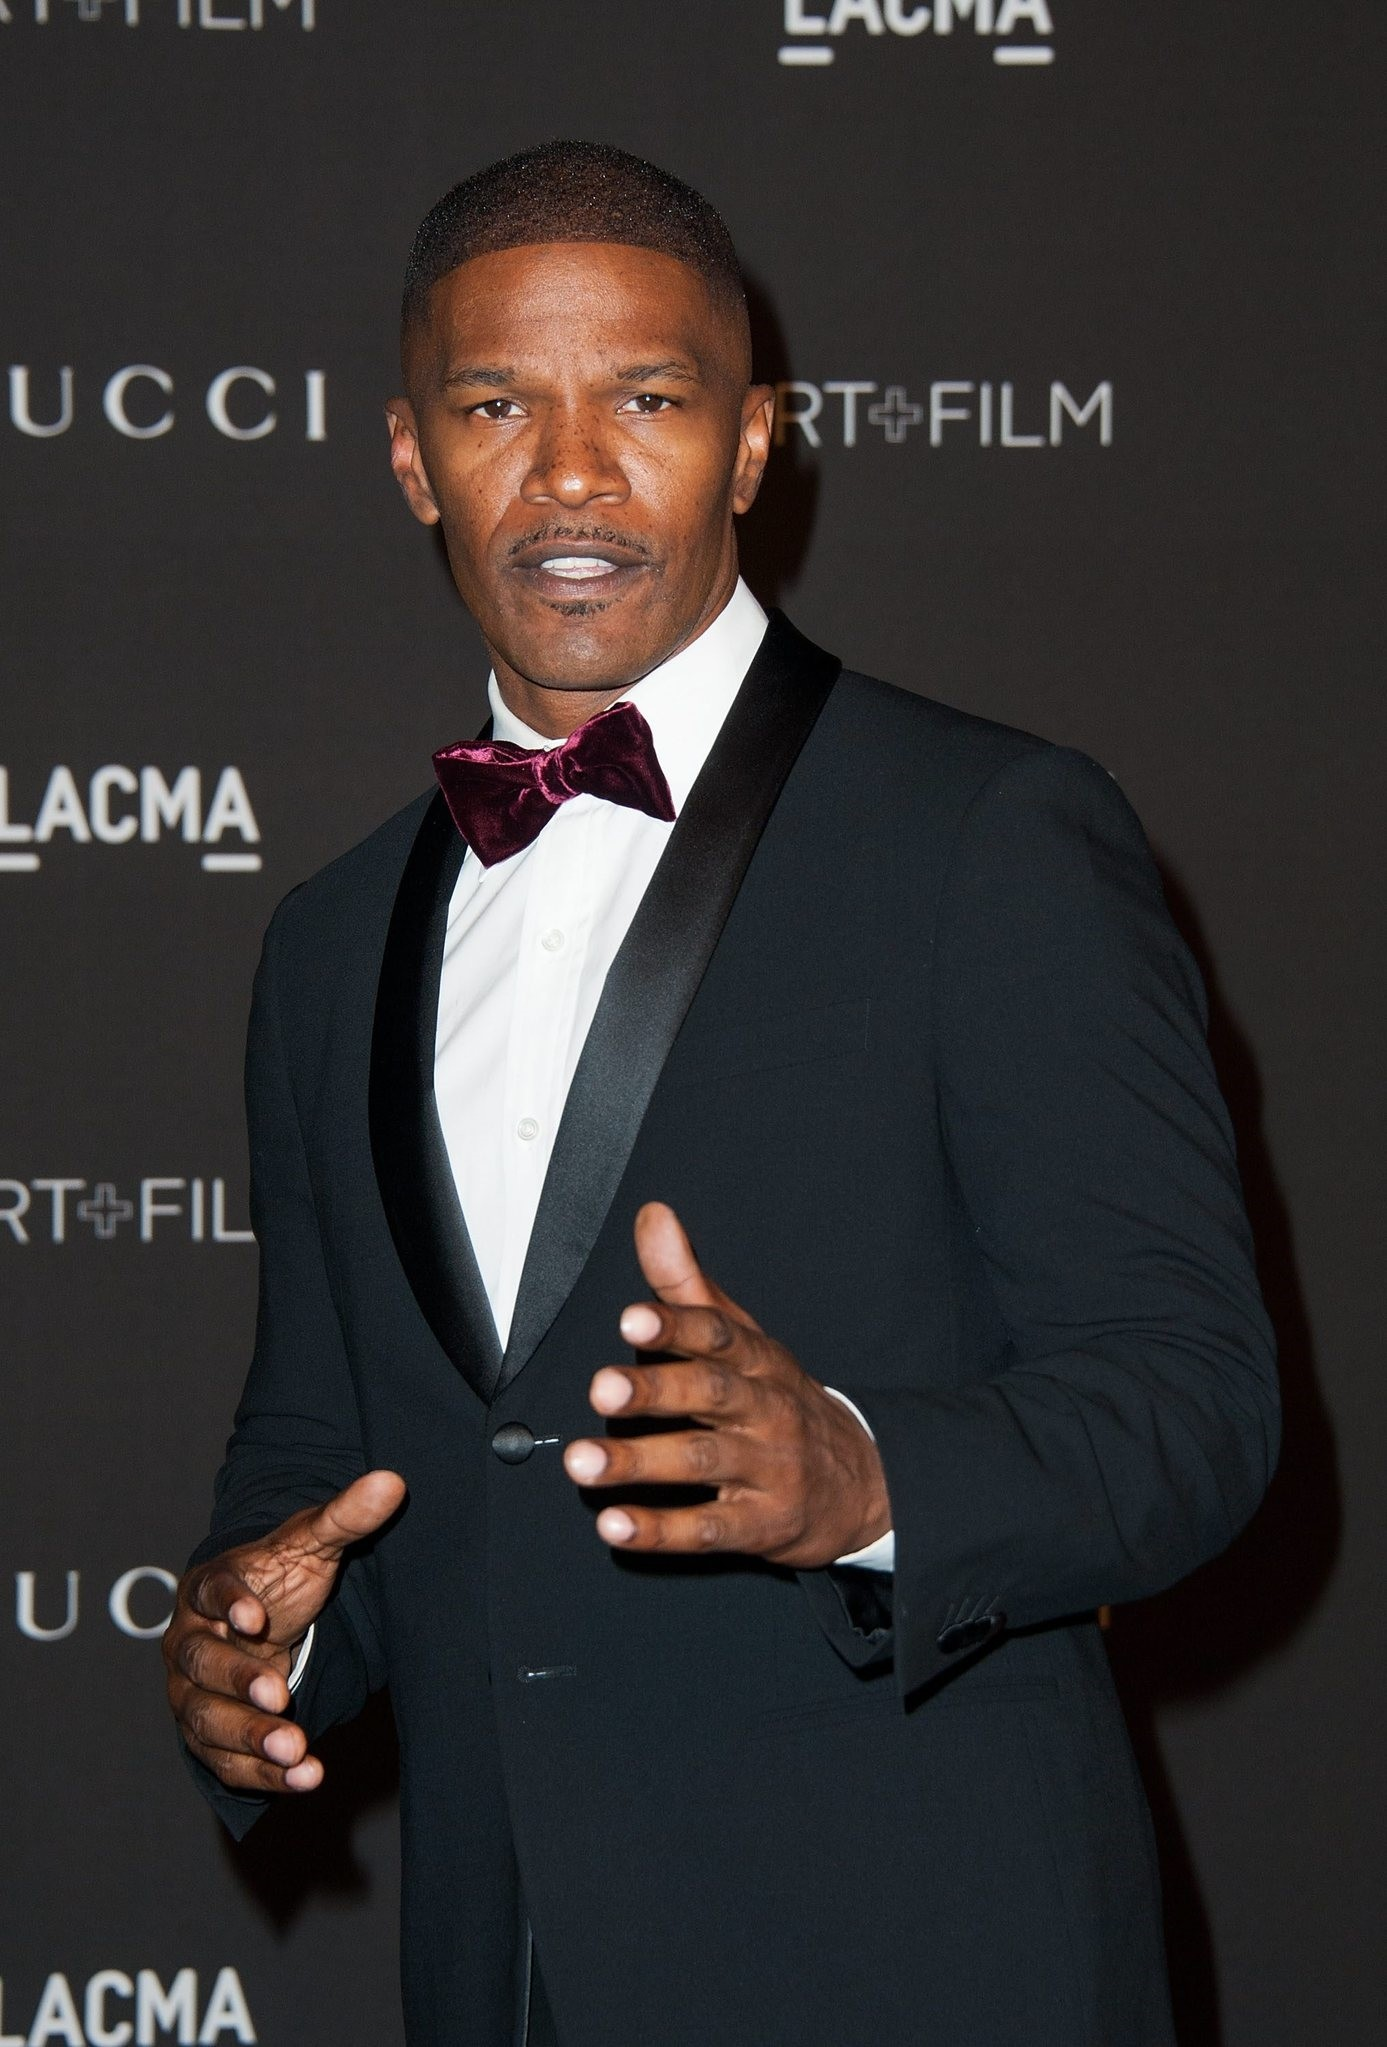 Jamie Foxx arriving for the 2014 LACMA Art (AFP Photo)